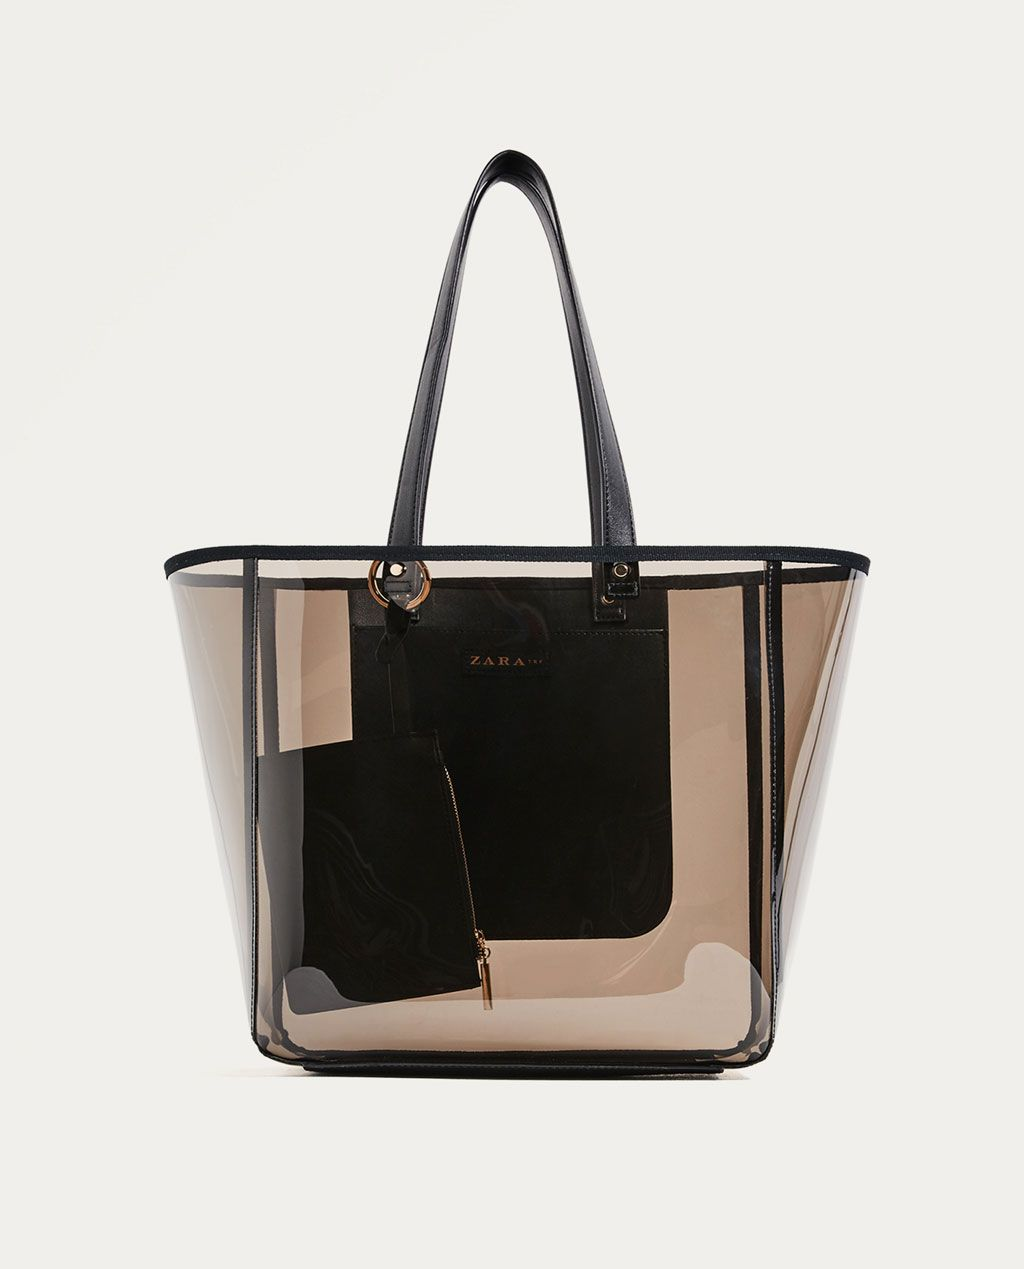 81317820e96173 Image 2 of TRANSPARENT TOTE from Zara | BAGS in 2019 | Bags, Black ...